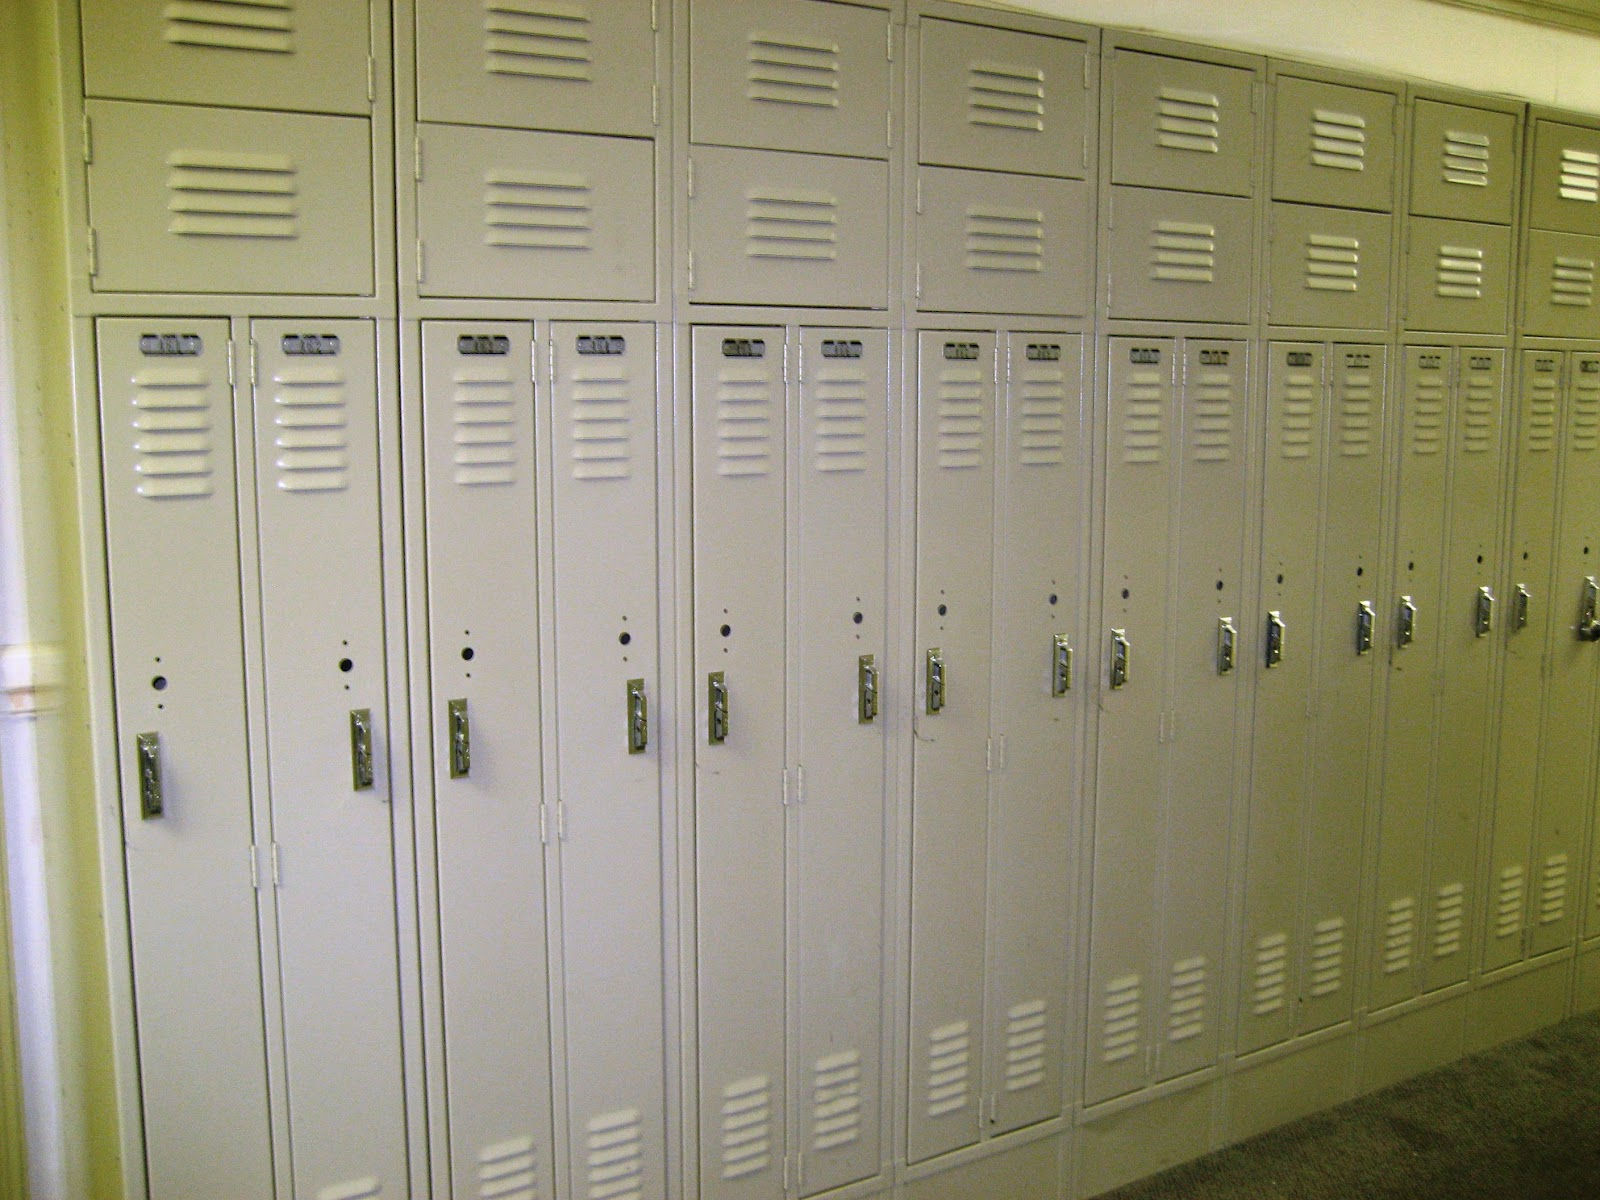 Brilliant Penco Lockers for Best Locker Choice: Guardian Lockers | Penco Lockers | Double Tier Metal Lockers